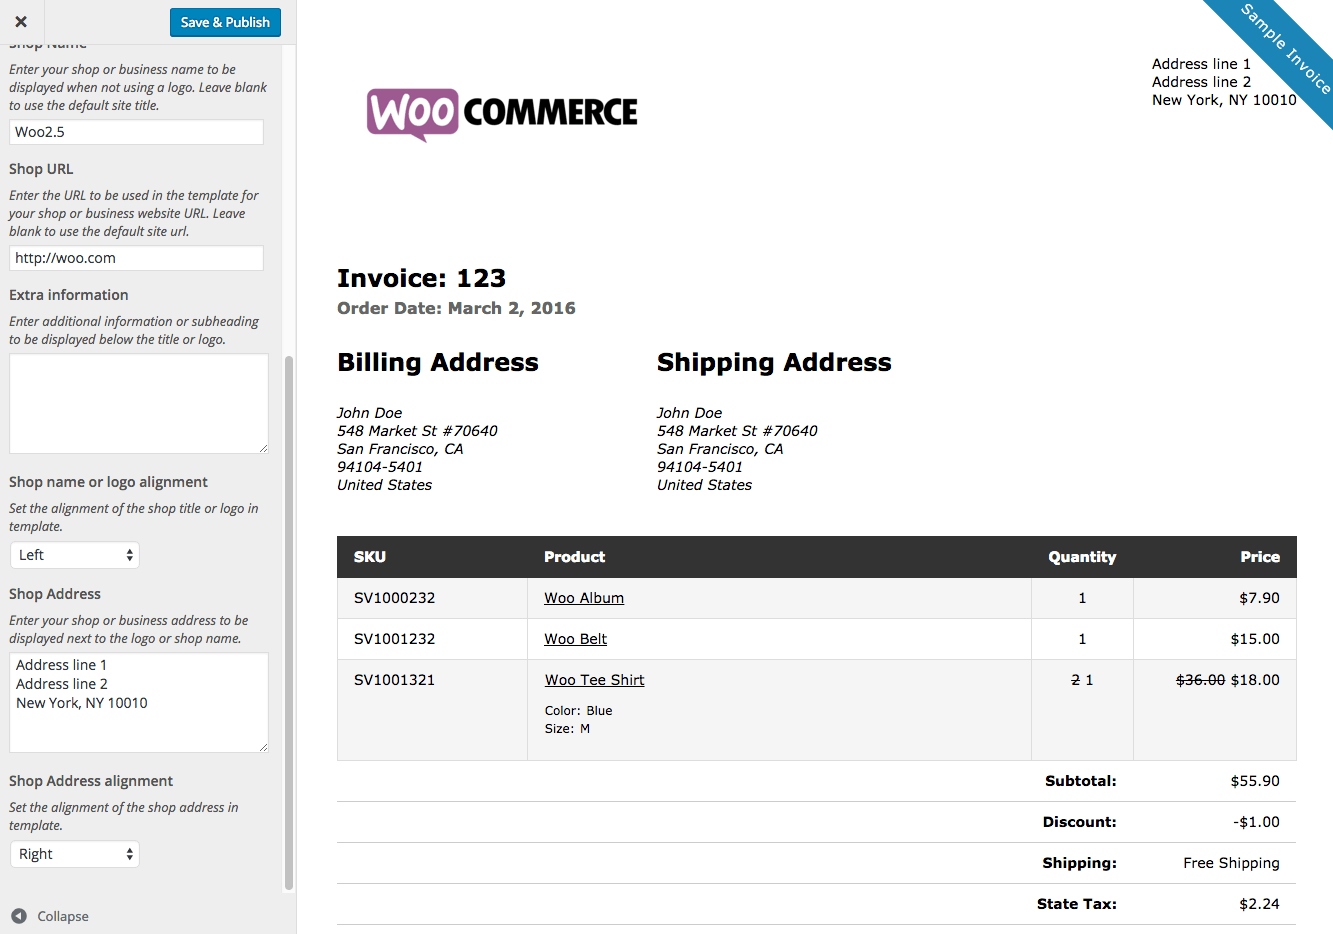 Bringjacobolivierhomeus  Gorgeous Woocommerce Print Invoices Amp Packing Lists  Woocommerce Docs With Fascinating Woocommerce Print Invoices  Packing Lists Customizer With Extraordinary Dhl Invoice Form Also Sample Invoice Cover Letter In Addition Web Invoice And Real Estate Invoice Template As Well As Toyota Prius Invoice Price Additionally Sample Letter For Past Due Invoices From Docswoocommercecom With Bringjacobolivierhomeus  Fascinating Woocommerce Print Invoices Amp Packing Lists  Woocommerce Docs With Extraordinary Woocommerce Print Invoices  Packing Lists Customizer And Gorgeous Dhl Invoice Form Also Sample Invoice Cover Letter In Addition Web Invoice From Docswoocommercecom